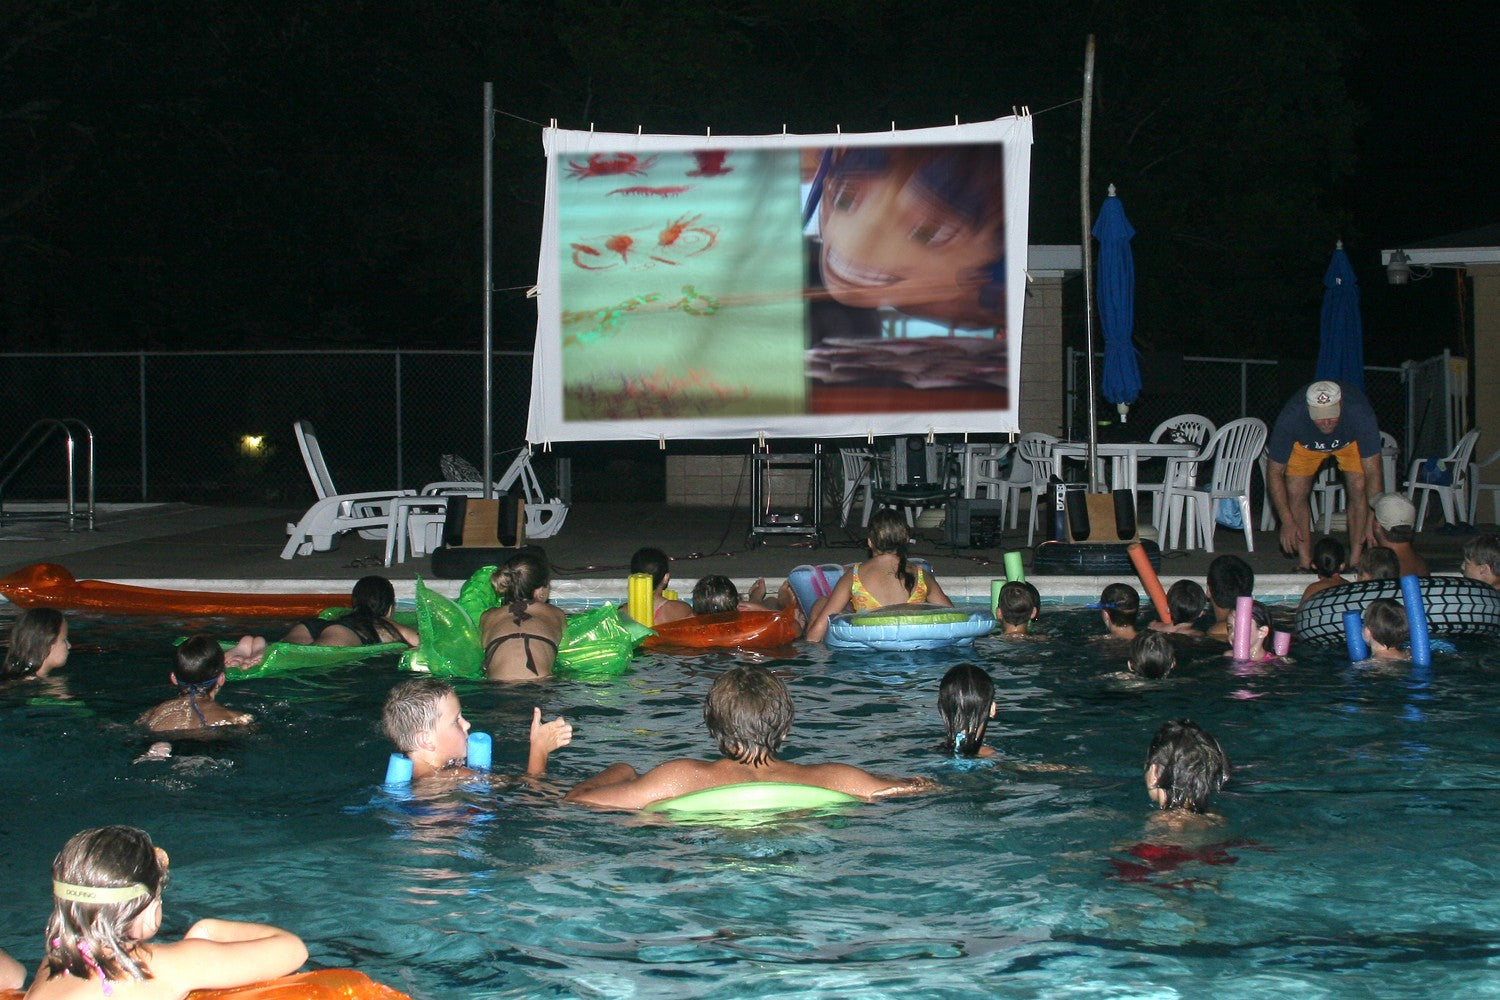 Dive-In Outdoor Movies at the University of Texas at San Antonio